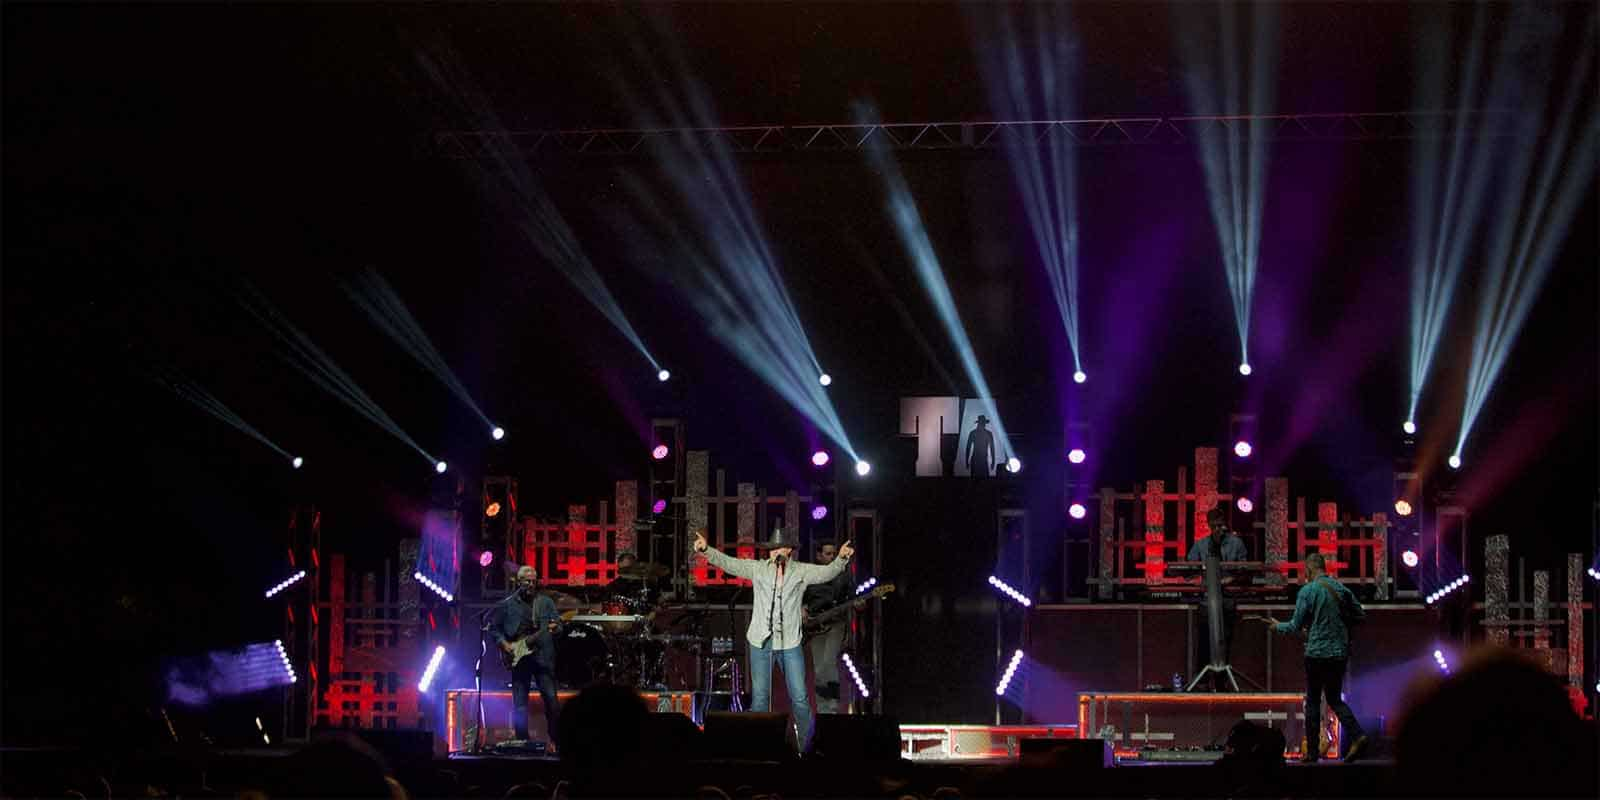 Country artist Trace atkins on stage at the Minnesota State fair 2019